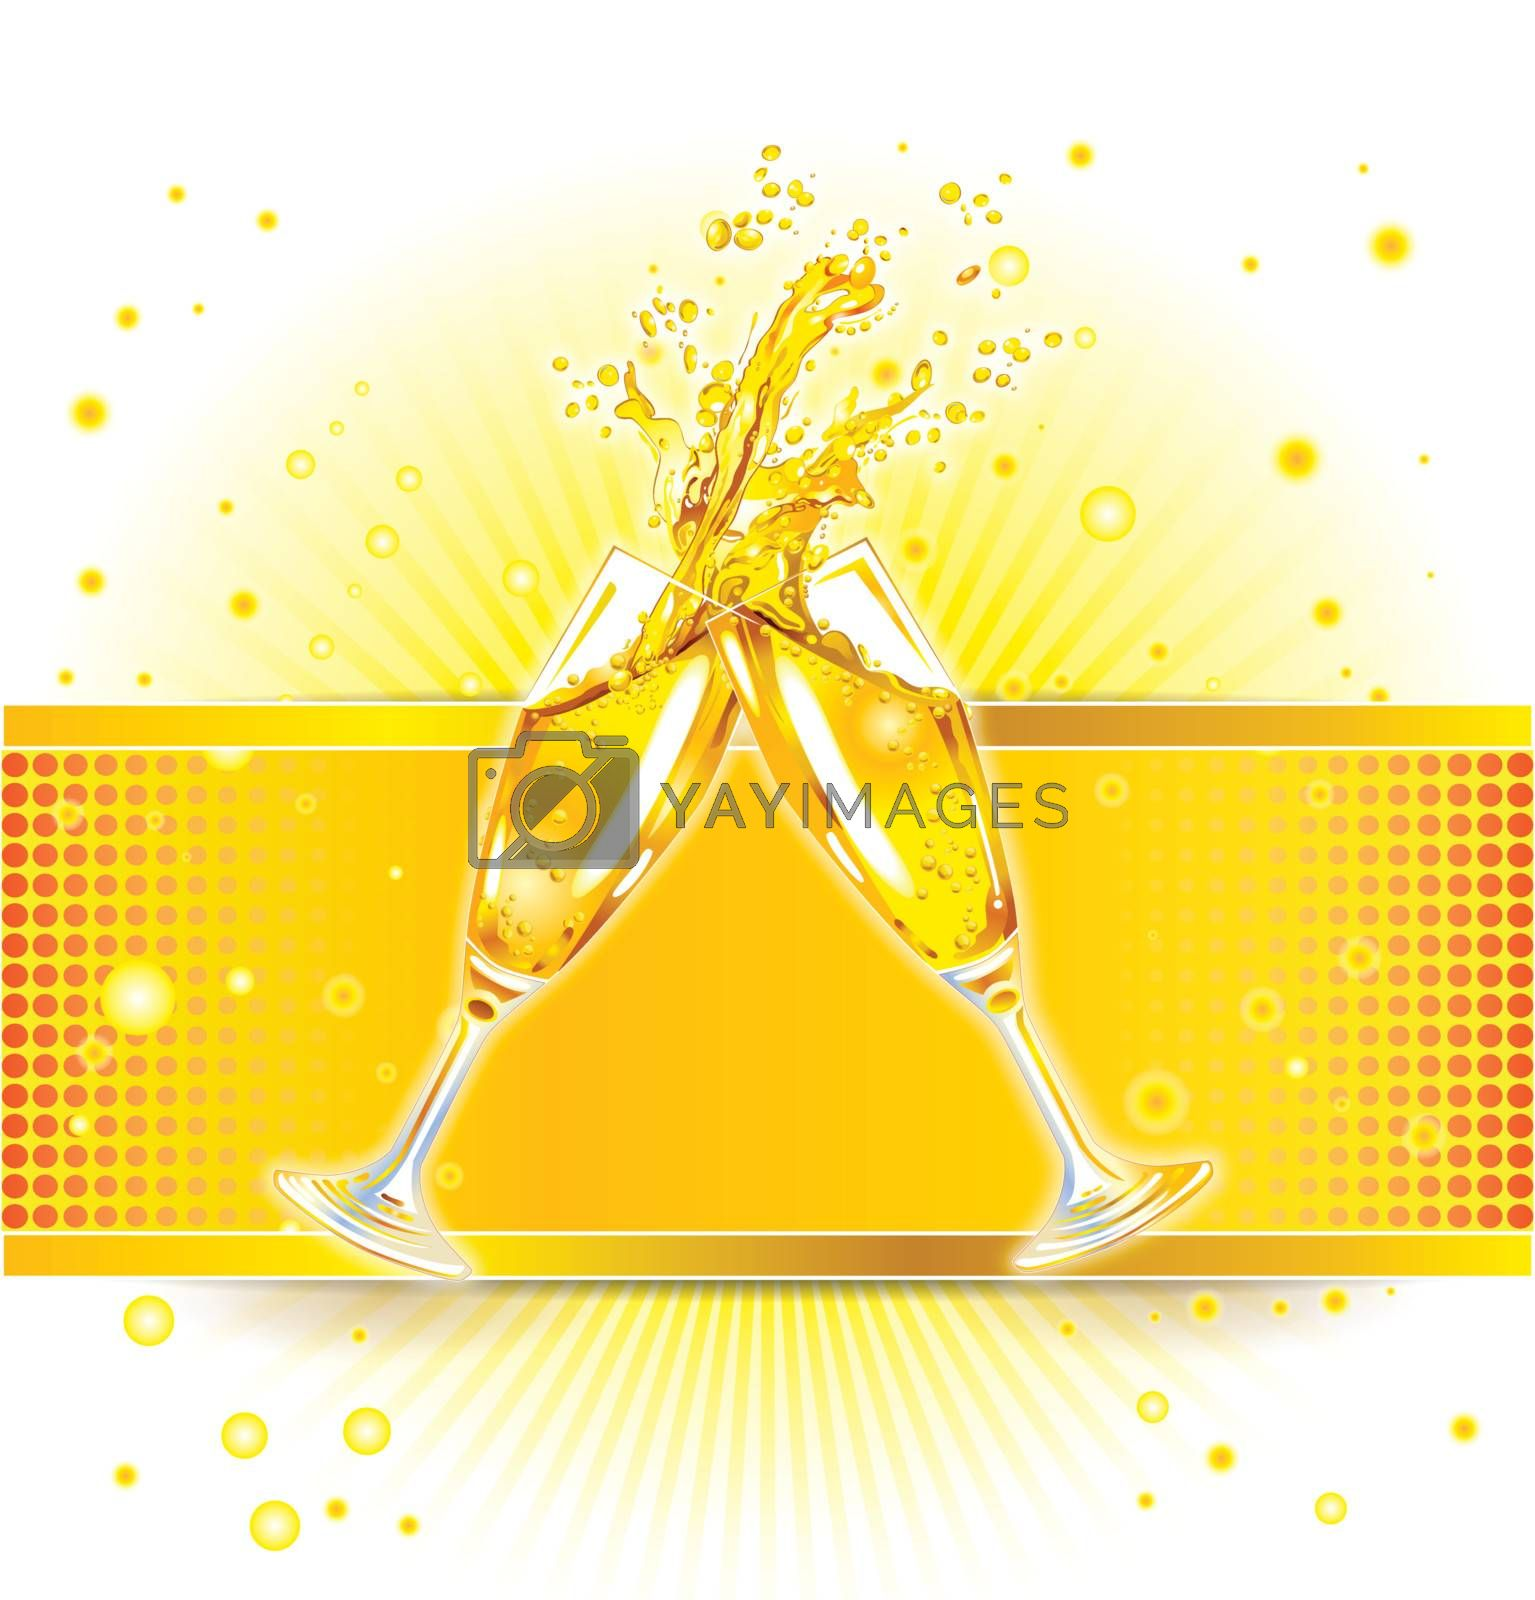 two clinking glasses with champagne on colorful background